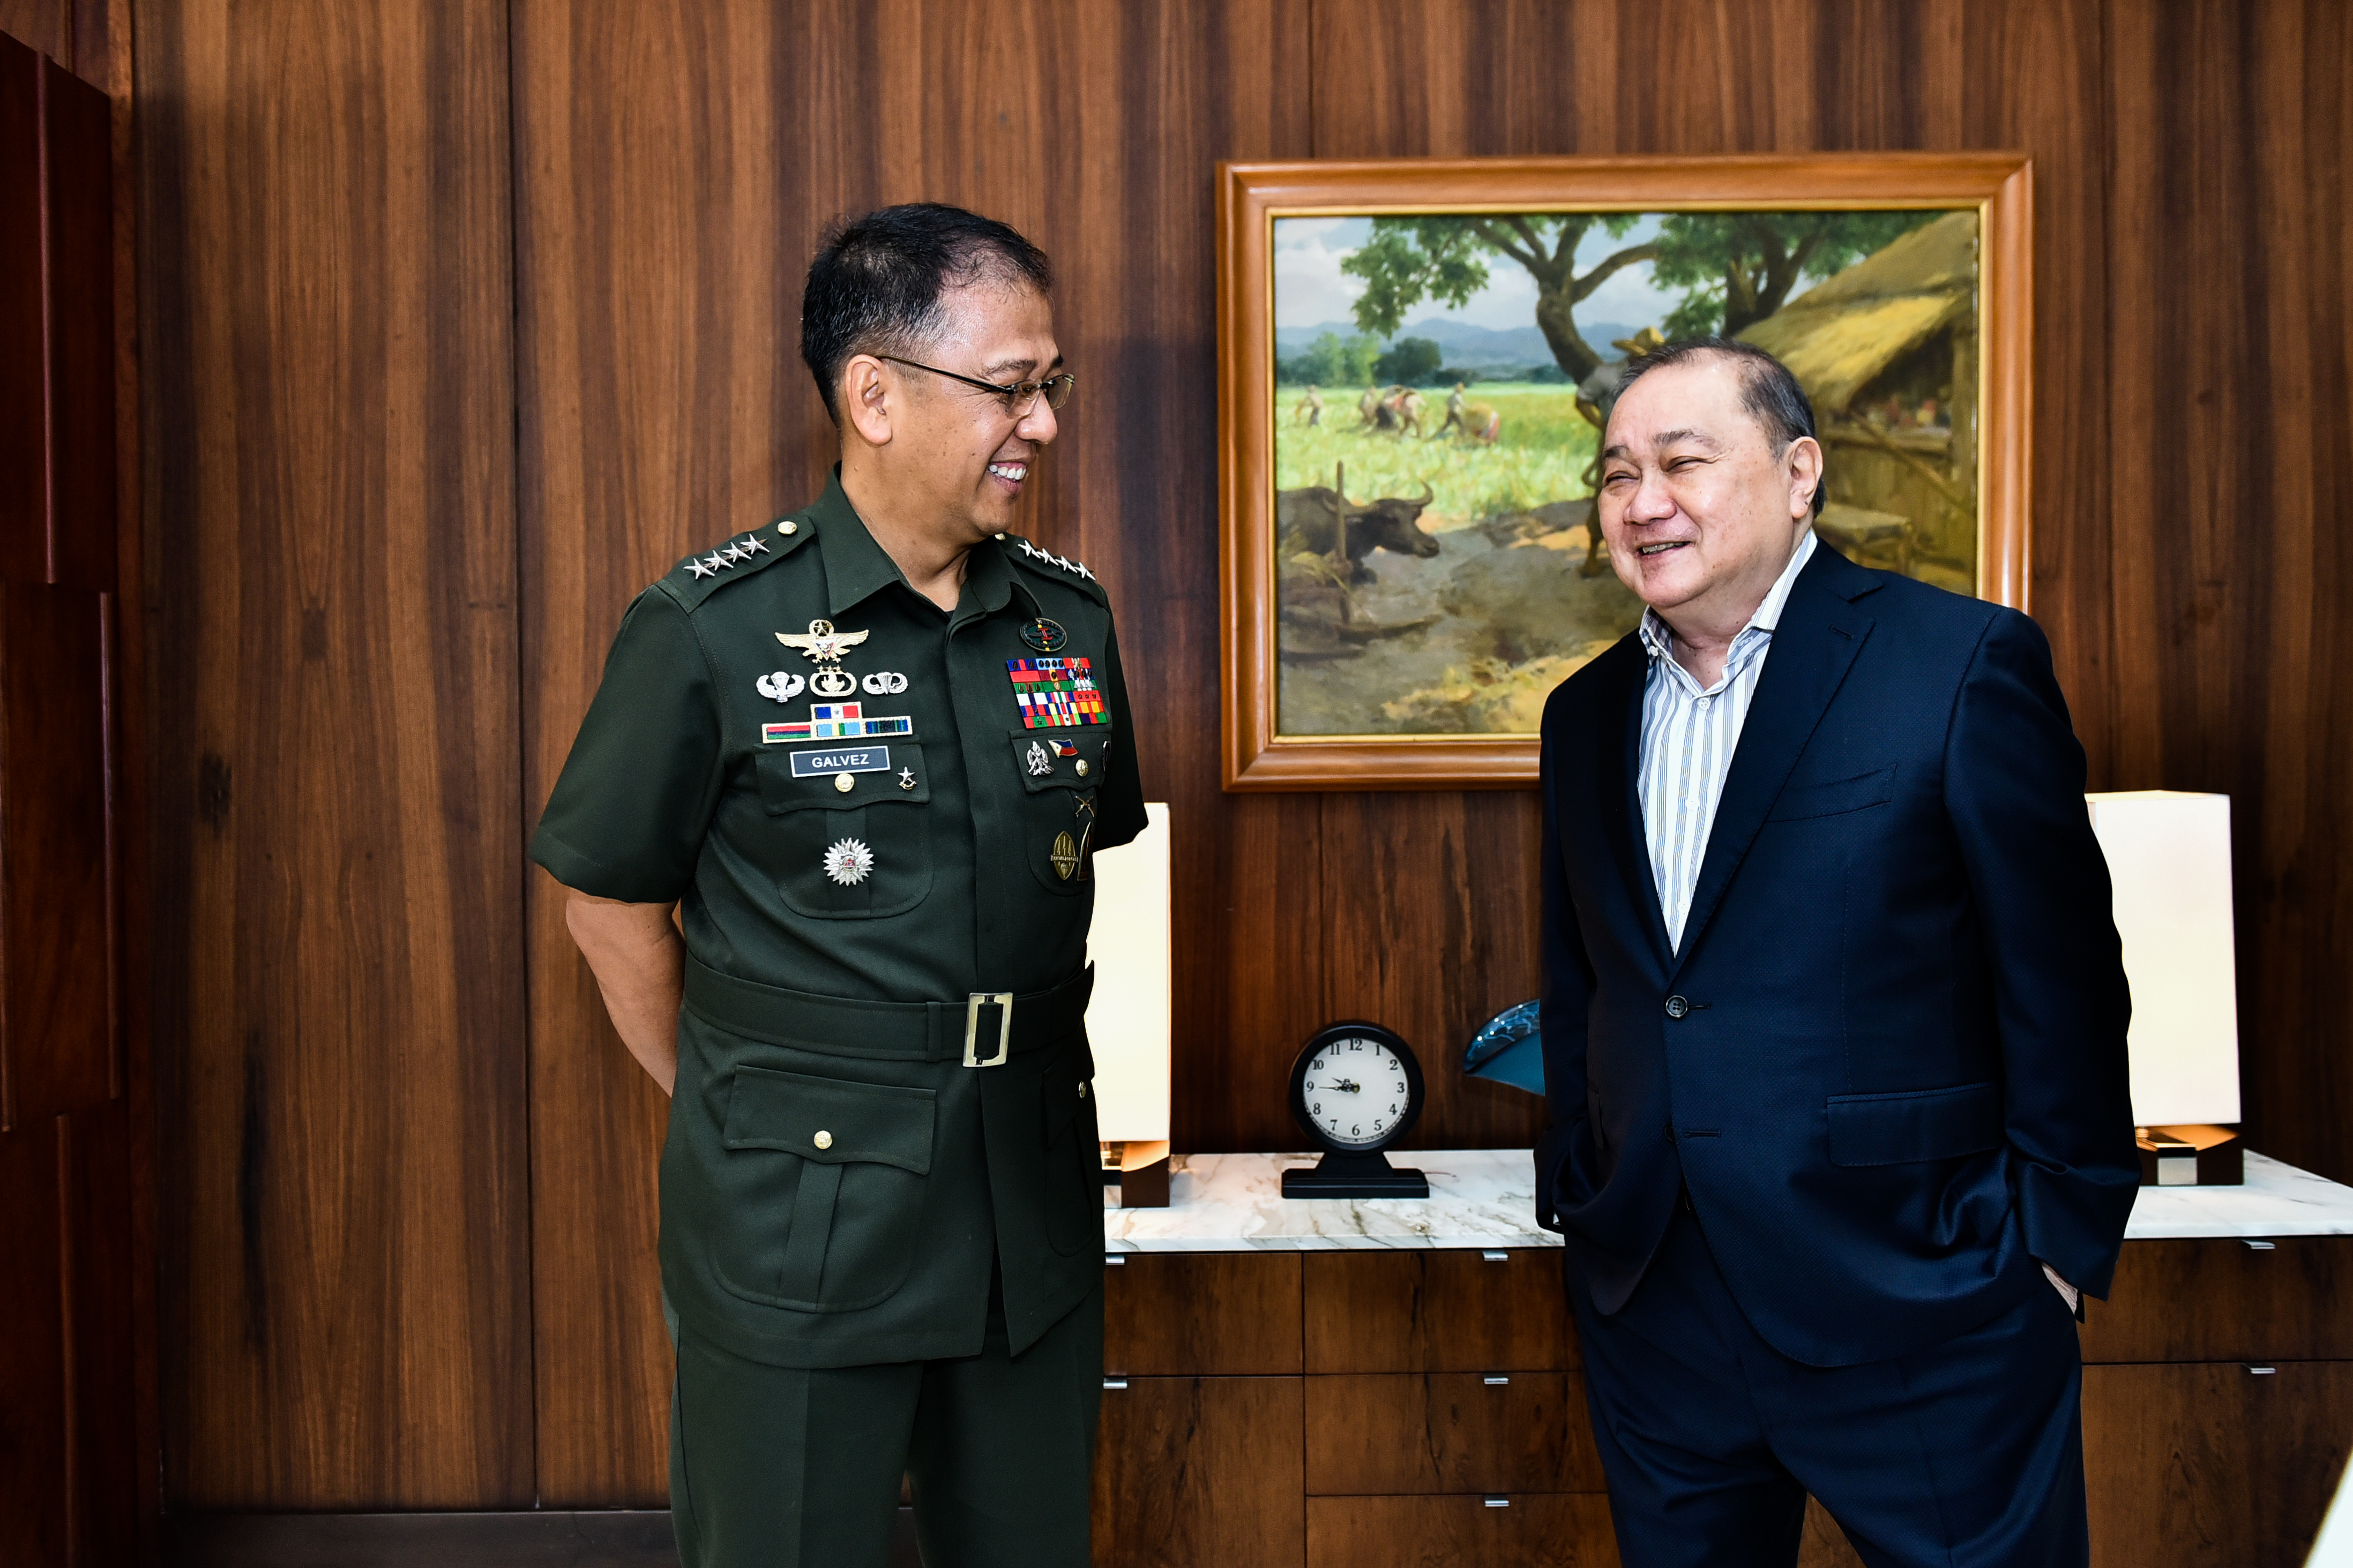 Meralco Chairman Manuel V. Pangilinan (right) with AFP Chief of Staff Gen. Carlito G. Galvez, Jr. (left)